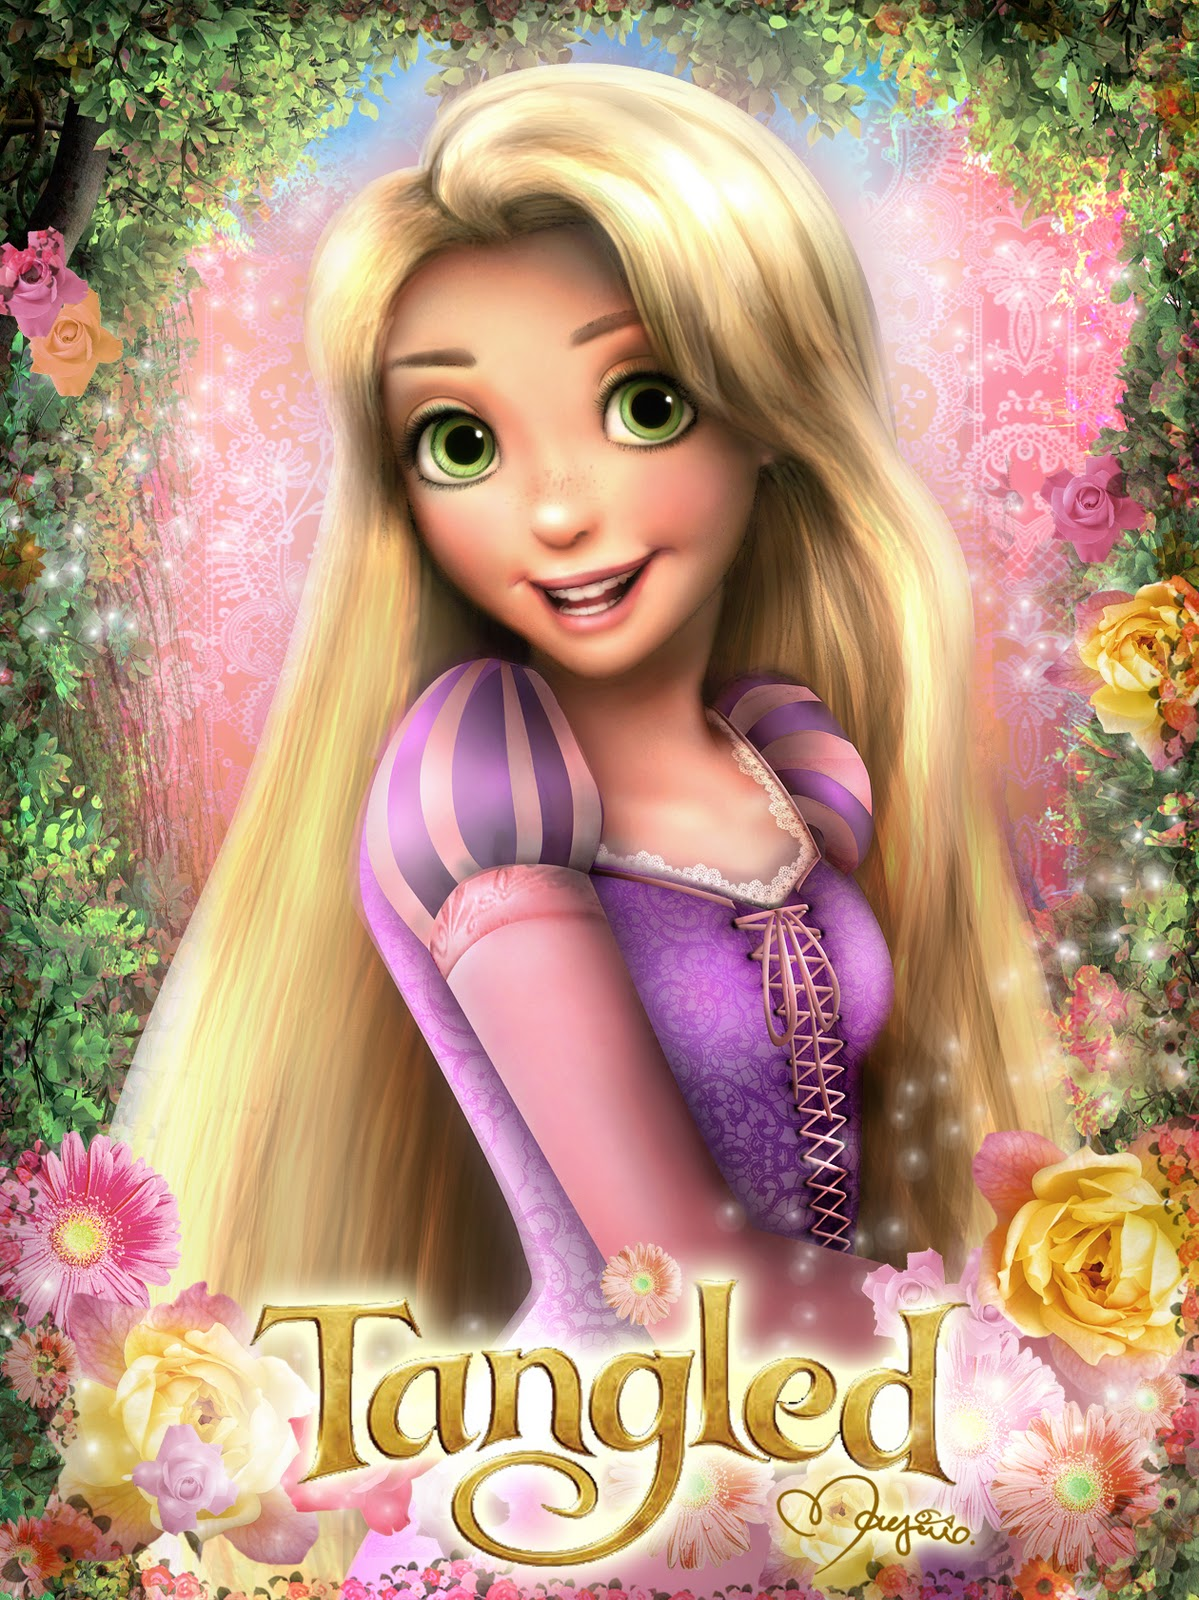 Tangled tale artworks